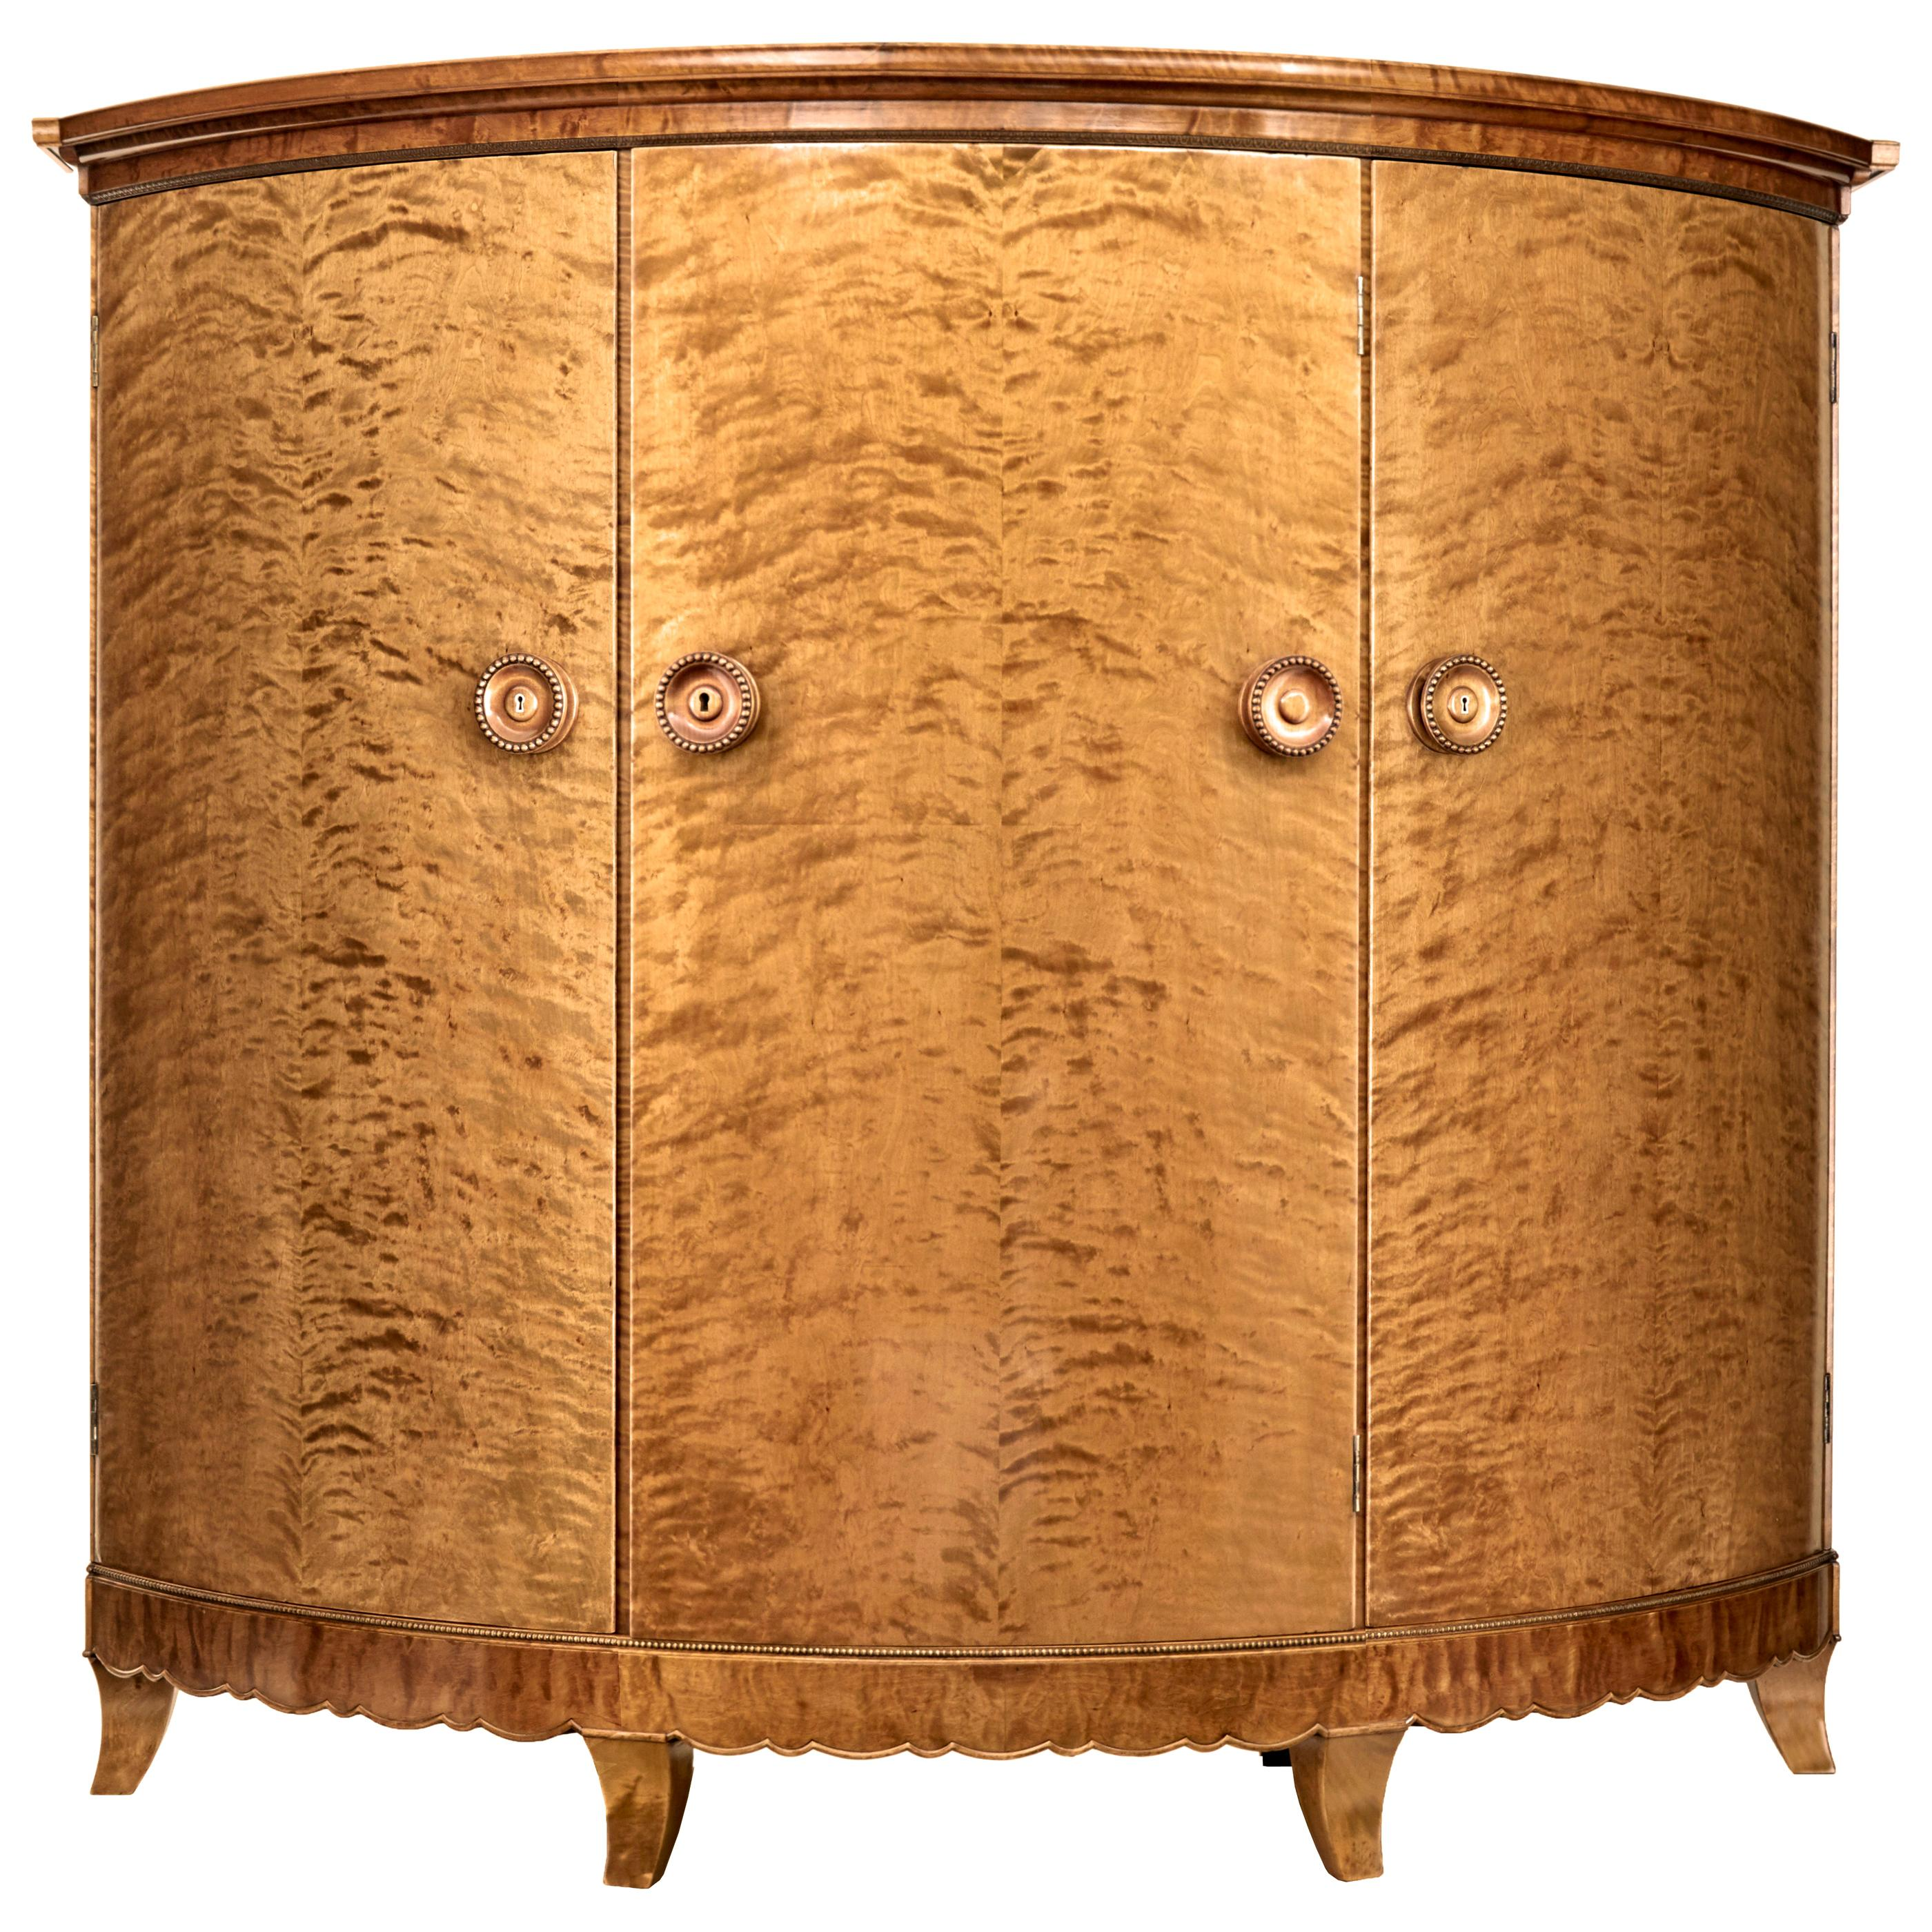 Rare 1930's Birch Cabinet of Grand Proportions Otto Schulz for Boet